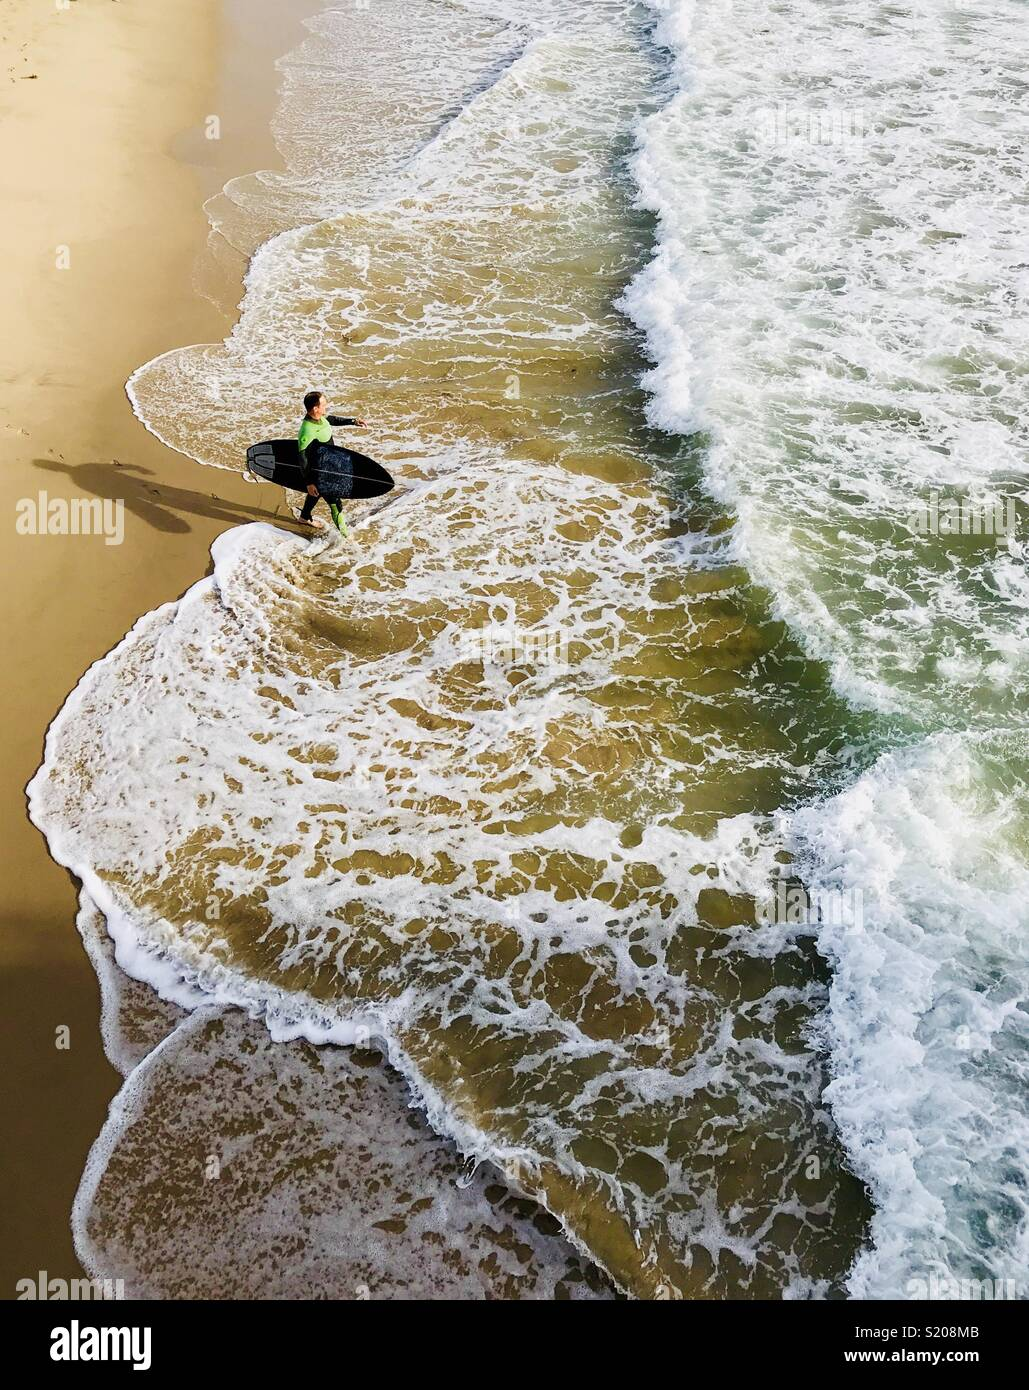 A male surfer walks out into the surf. Manhattan Beach, California USA. - Stock Image